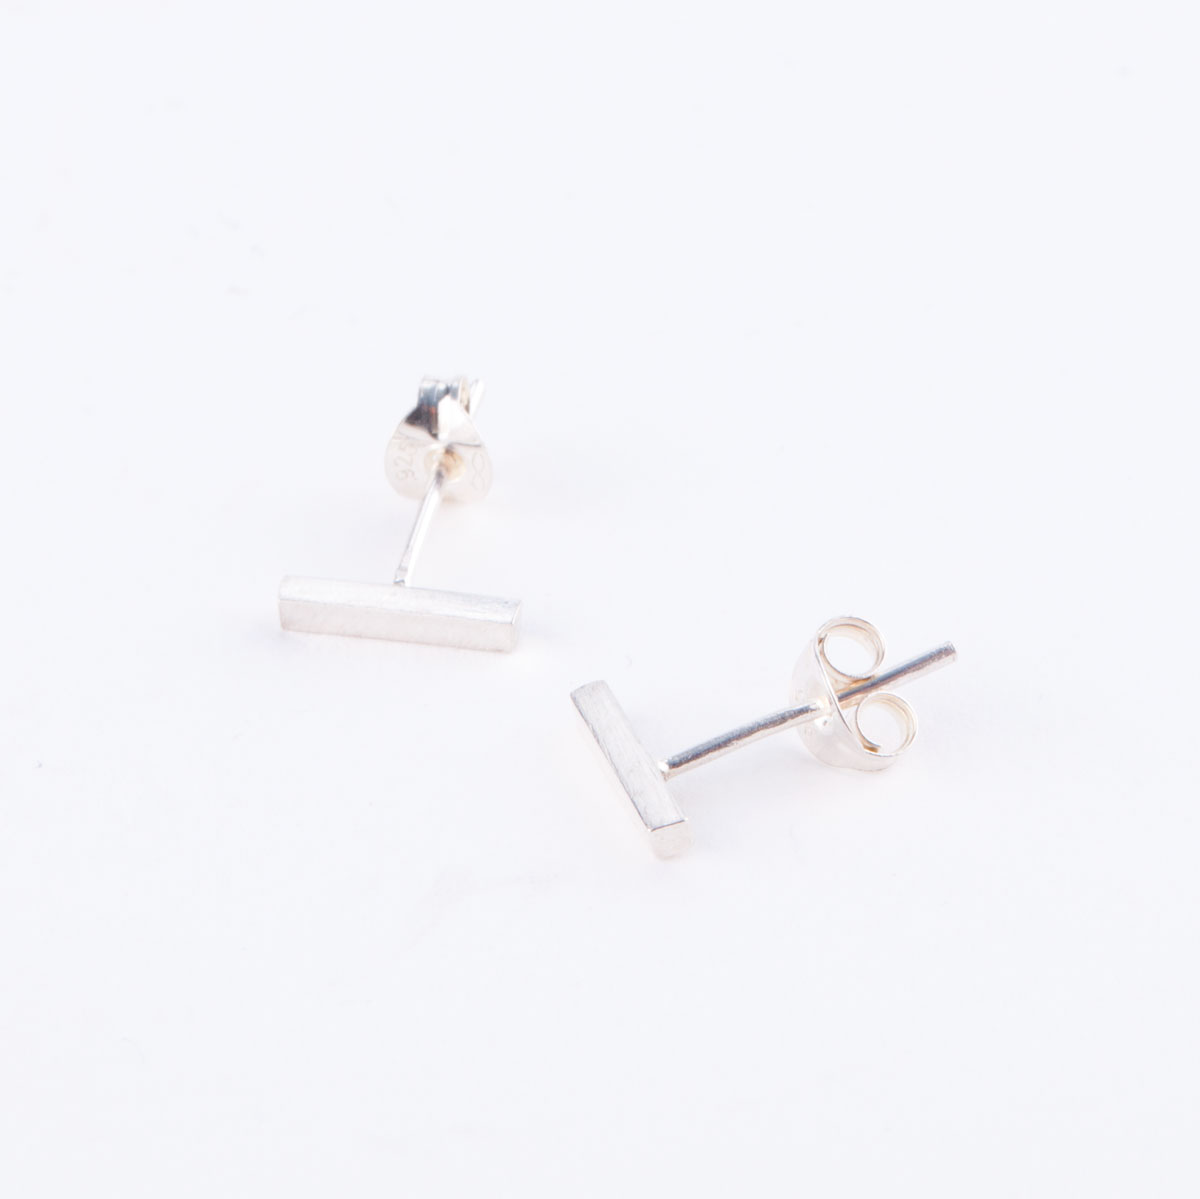 silver staple earrings